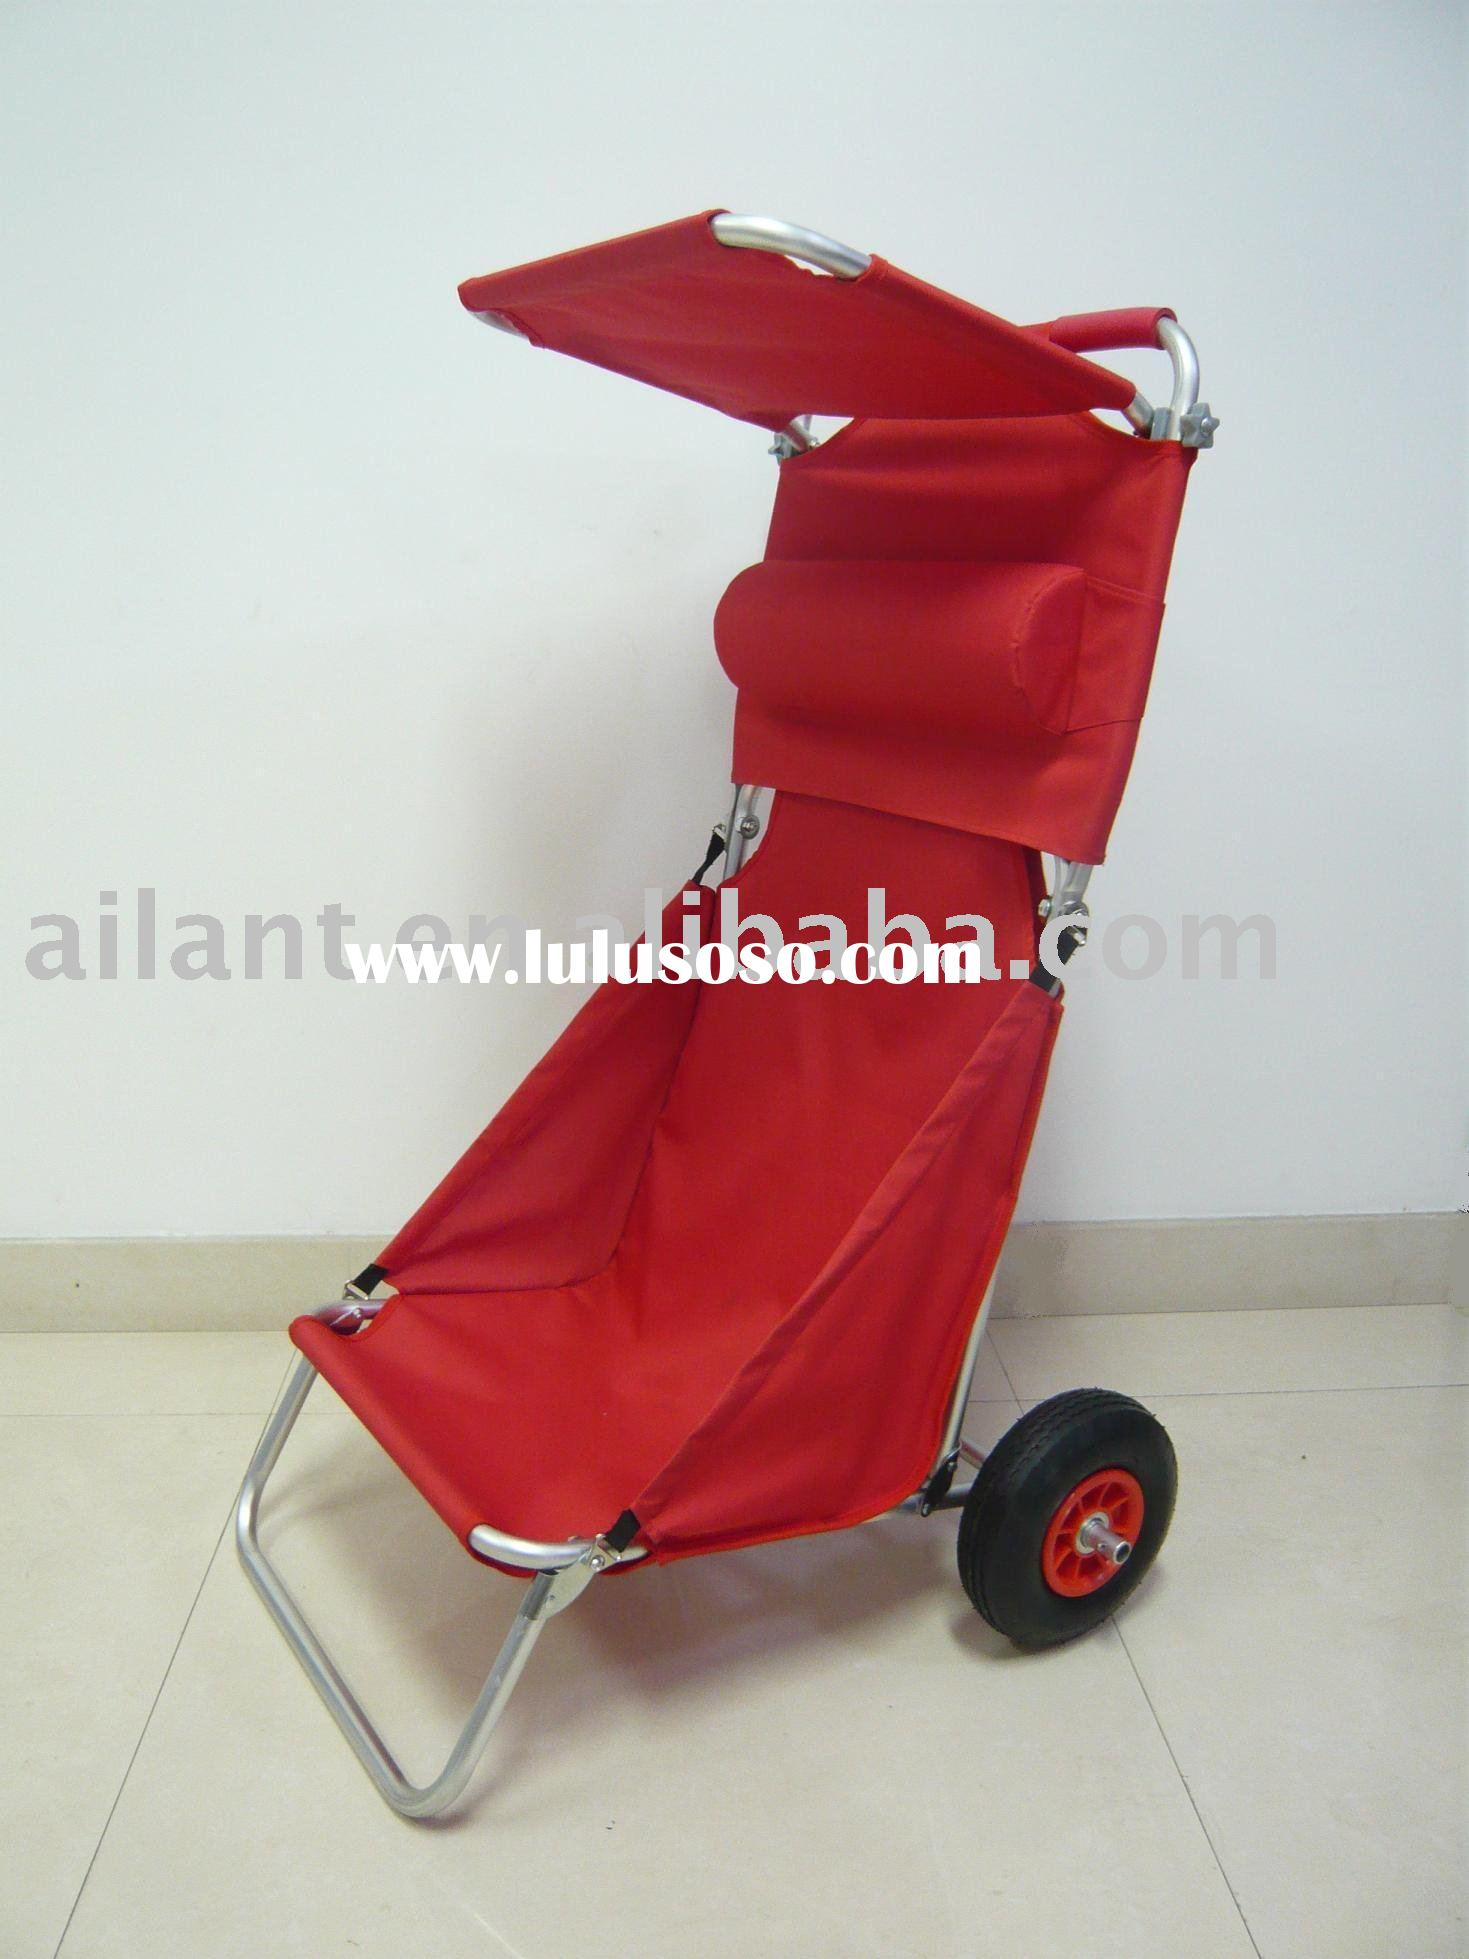 Aluminium Foldable Beach Trolley/Camping chair/Beach rolley/Garden Chair/Fishing Equipment/Swimming